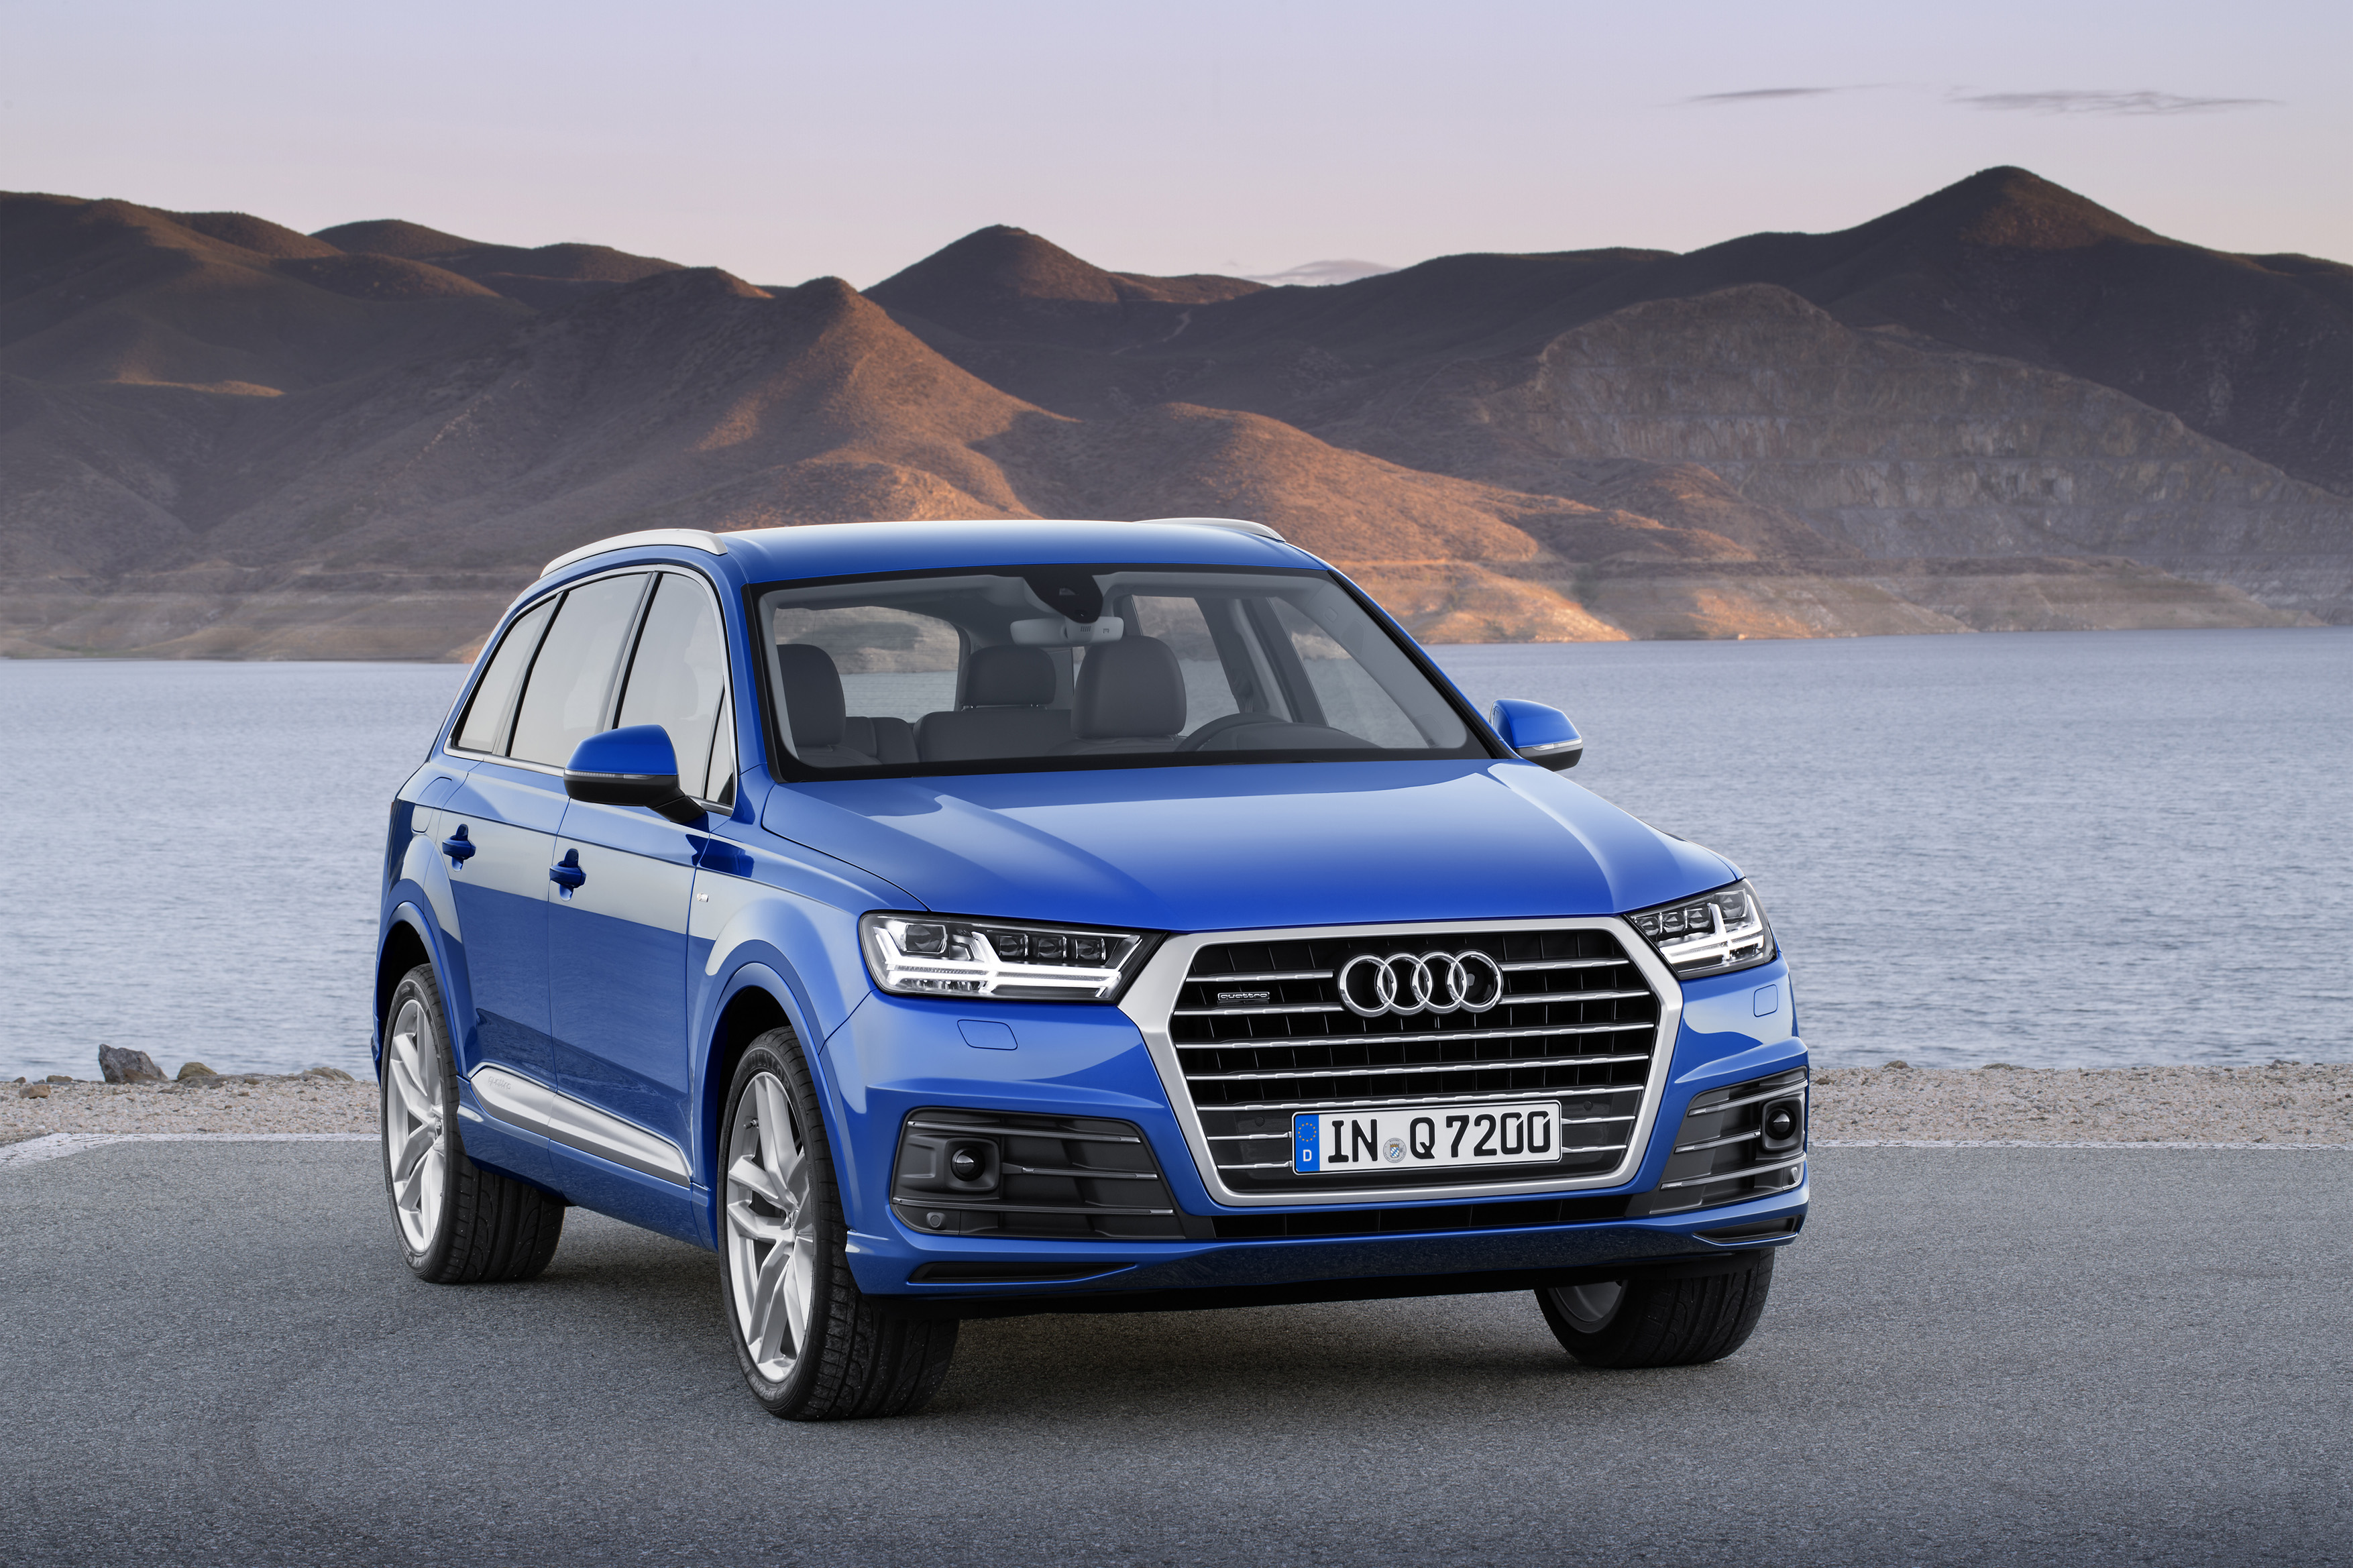 Audi Q7 Second Generation 7 Seater Suv Debuts Image 336987